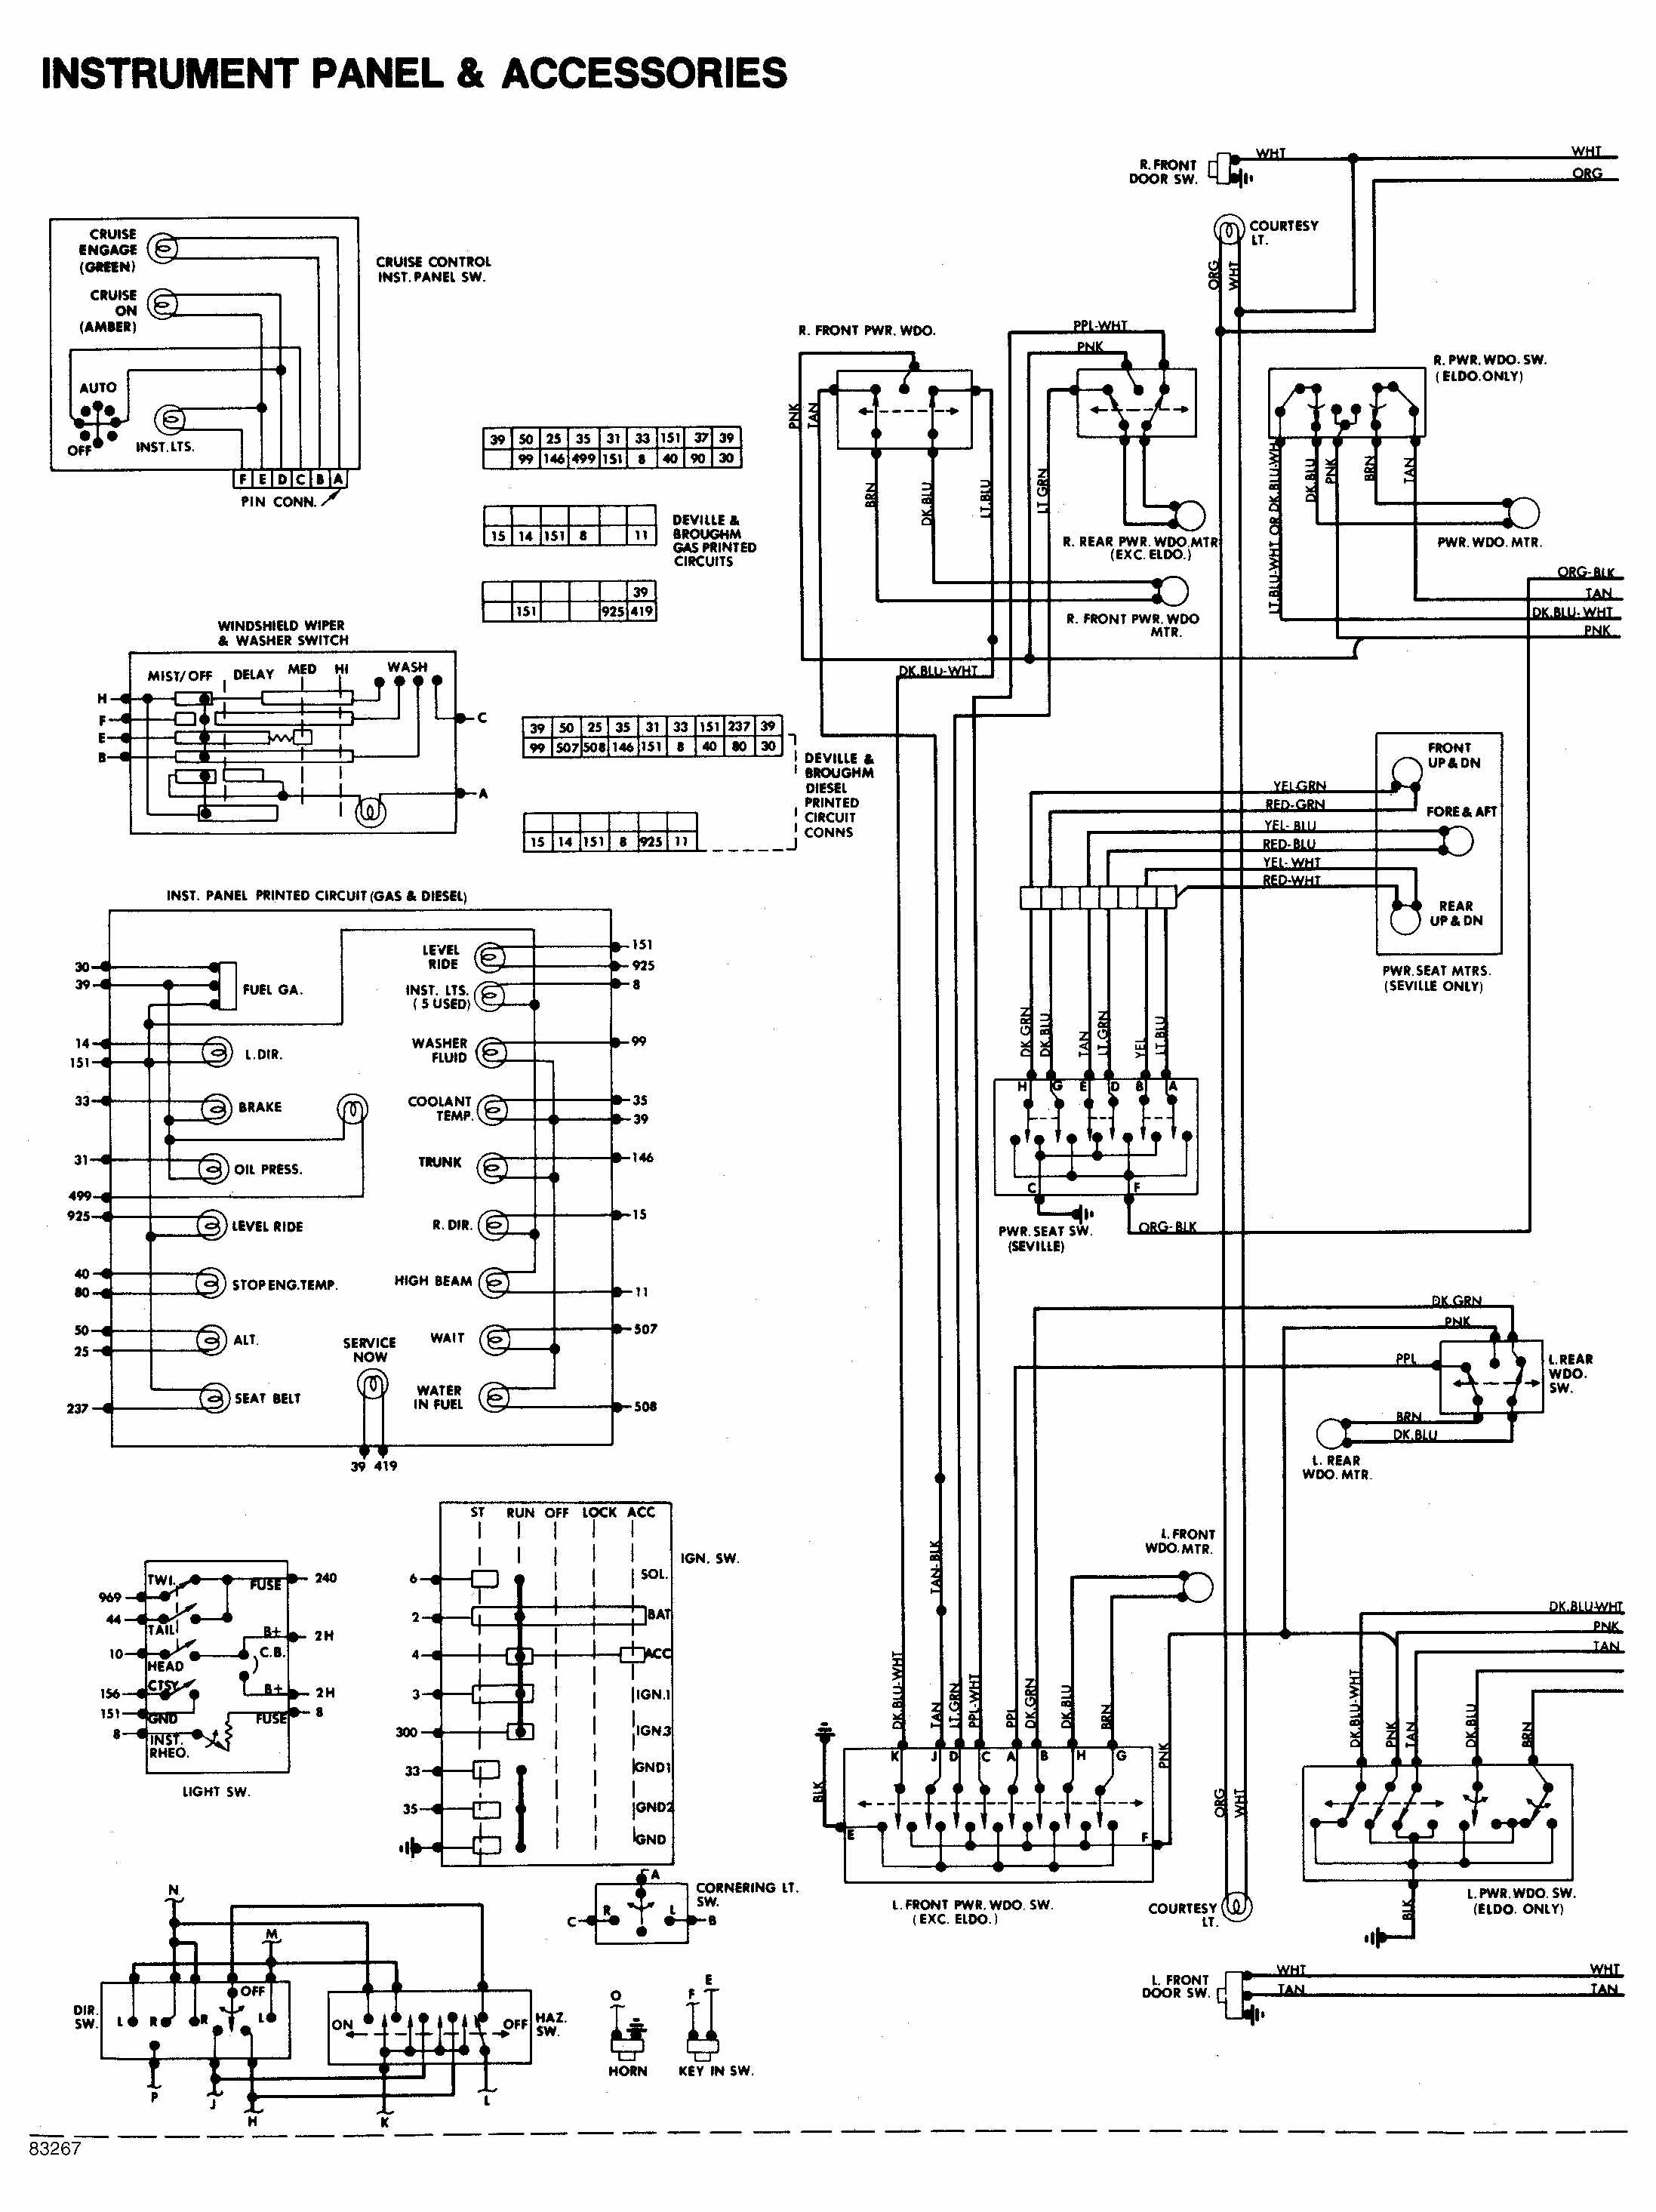 Instrument Panel And Accessories Wiring Diagram Of Cadillac Deville on 2000 Cadillac Deville Wiring Diagrams